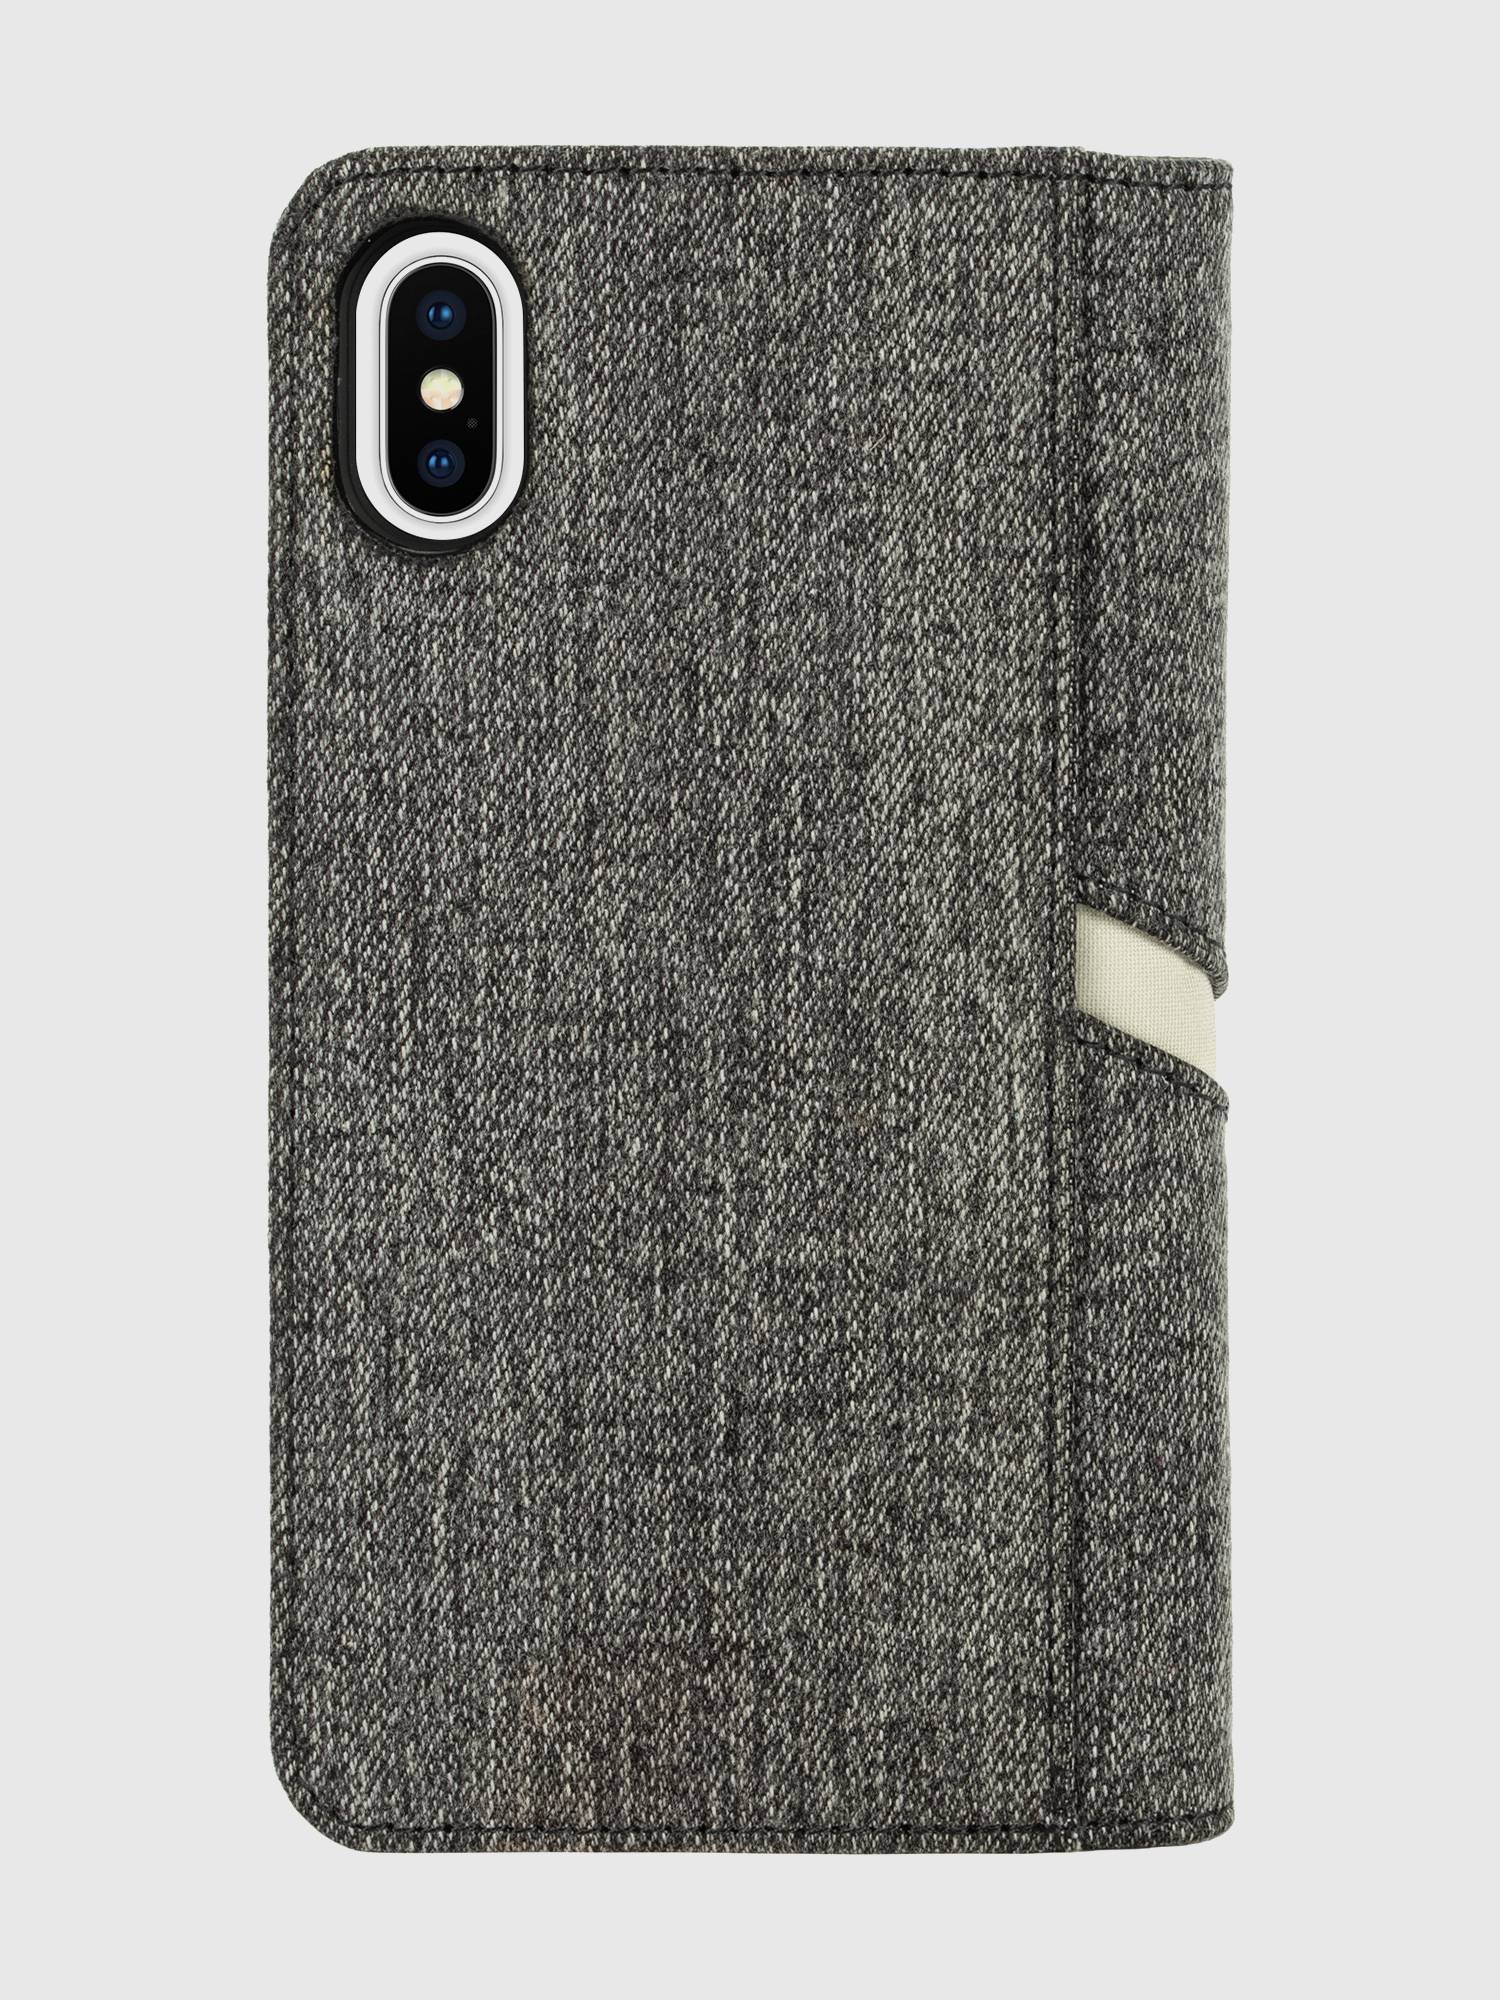 Diesel - DIESEL 2-IN-1 FOLIO CASE FOR IPHONE XS & IPHONE X,  - Flip covers - Image 2